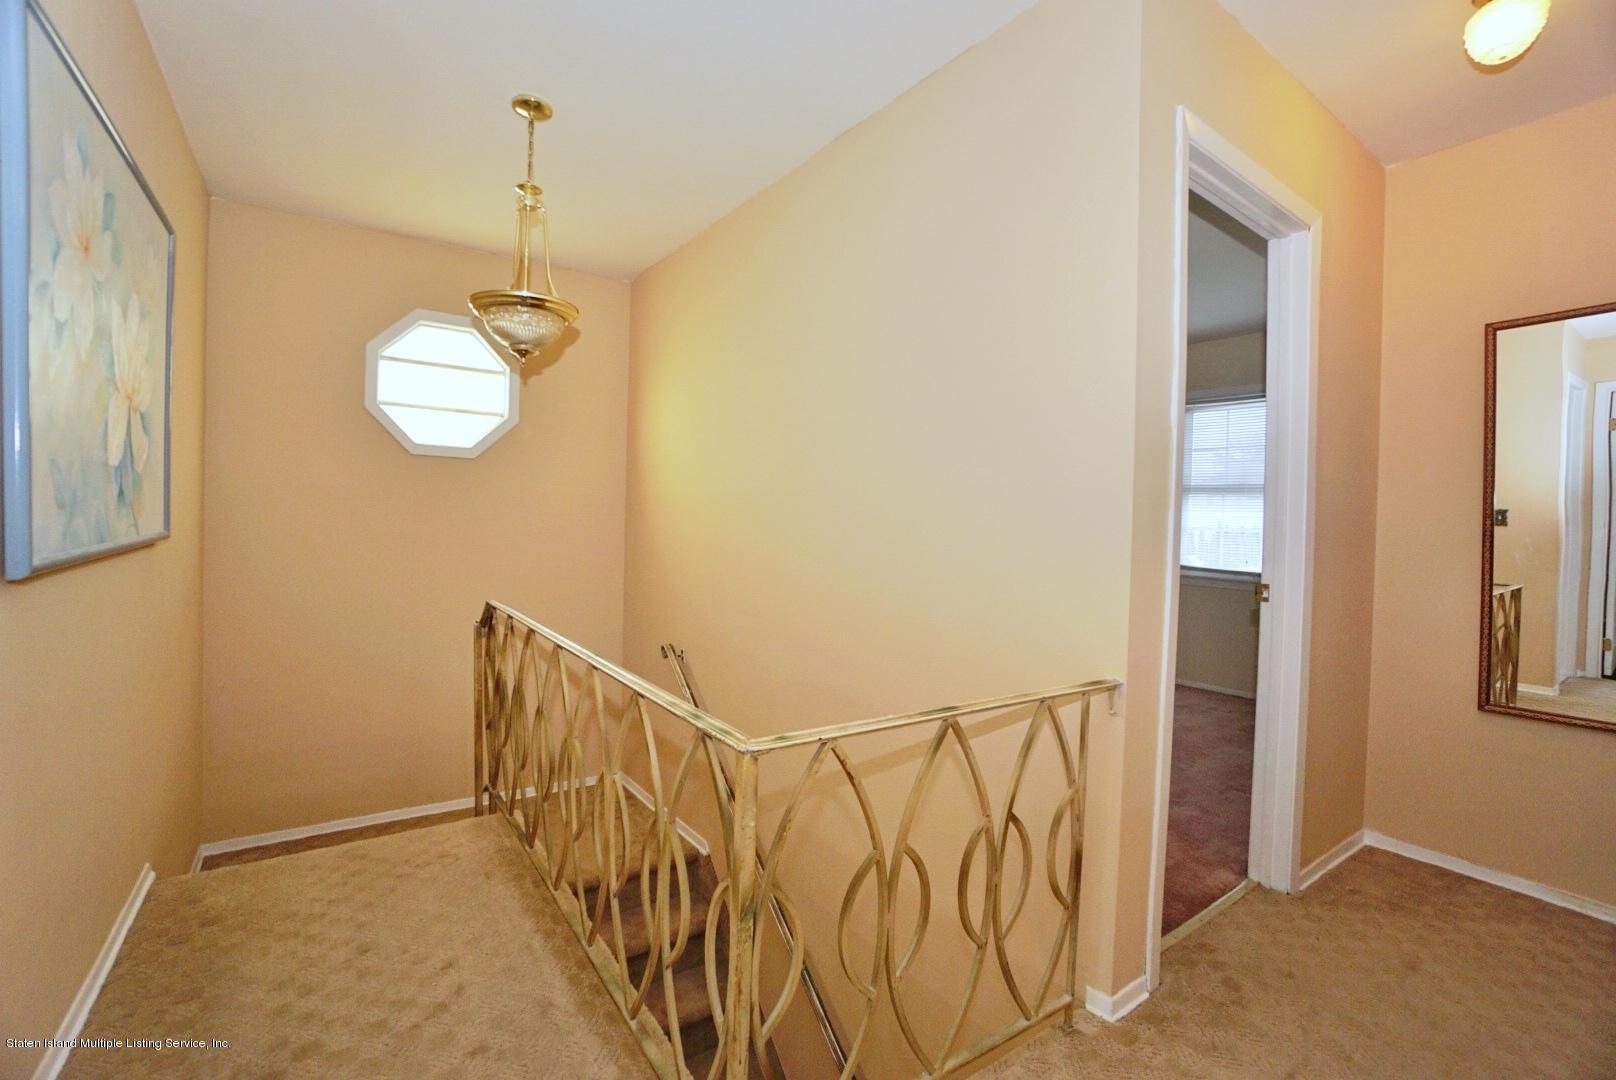 Single Family - Detached 265 Adelaide Avenue  Staten Island, NY 10306, MLS-1139235-41